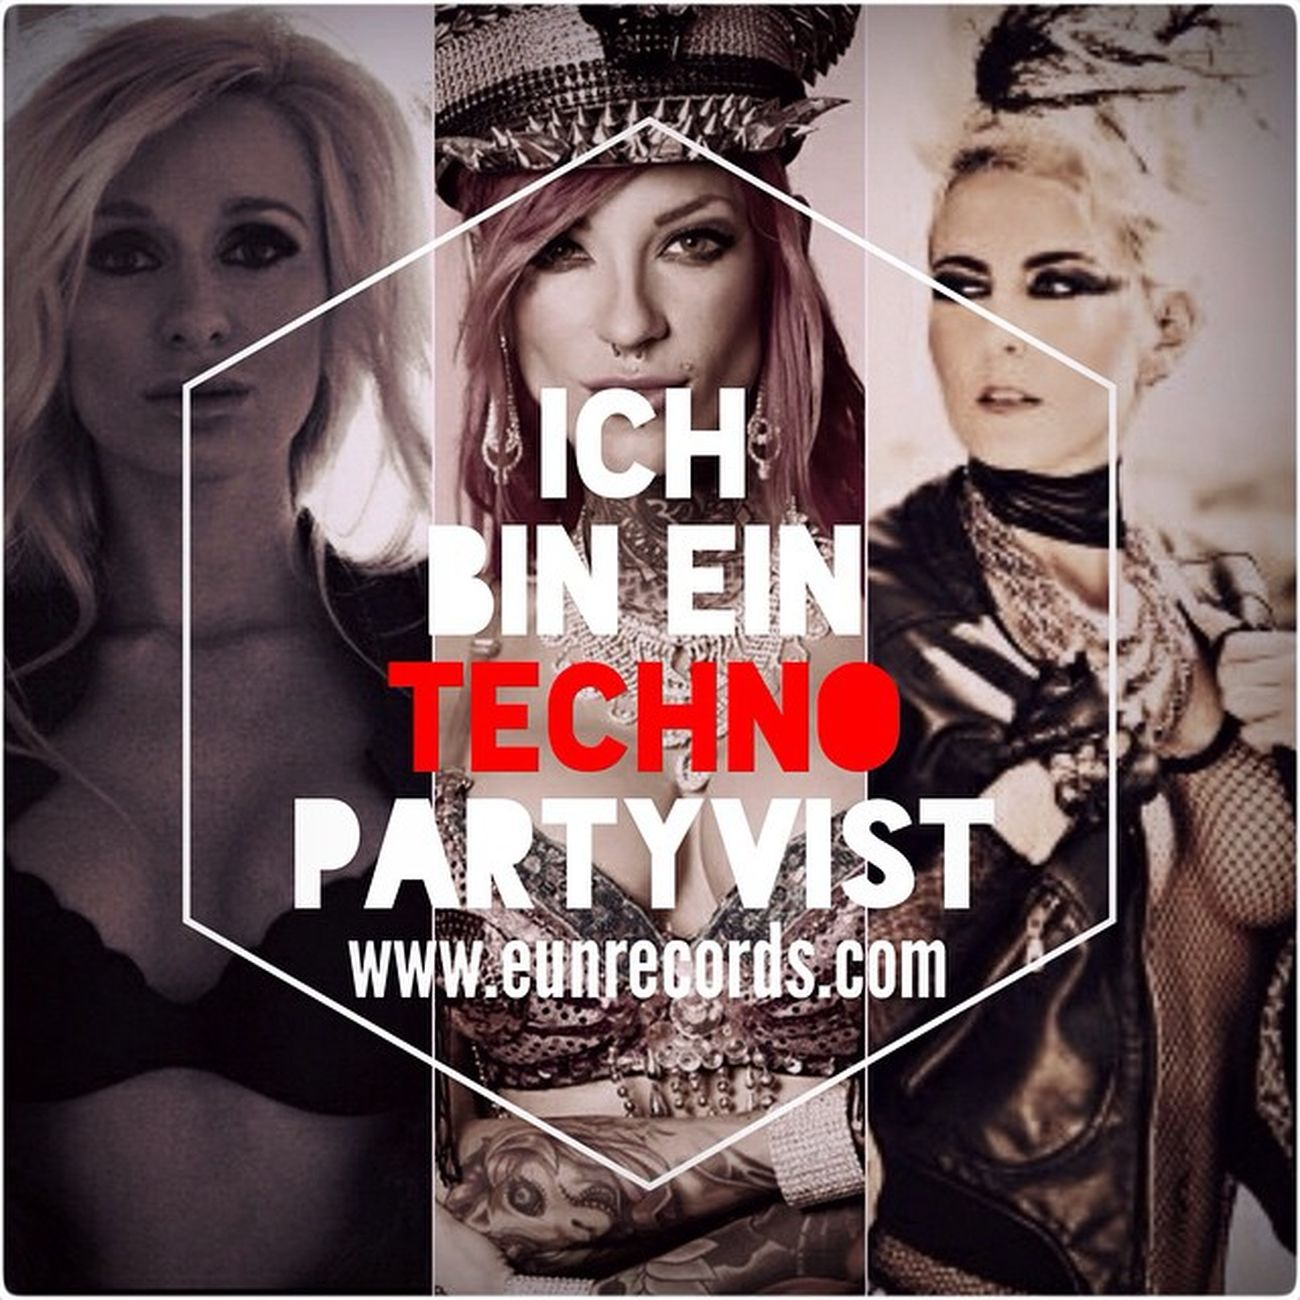 Techno Partyvist  Ade14 EUNRECORDS